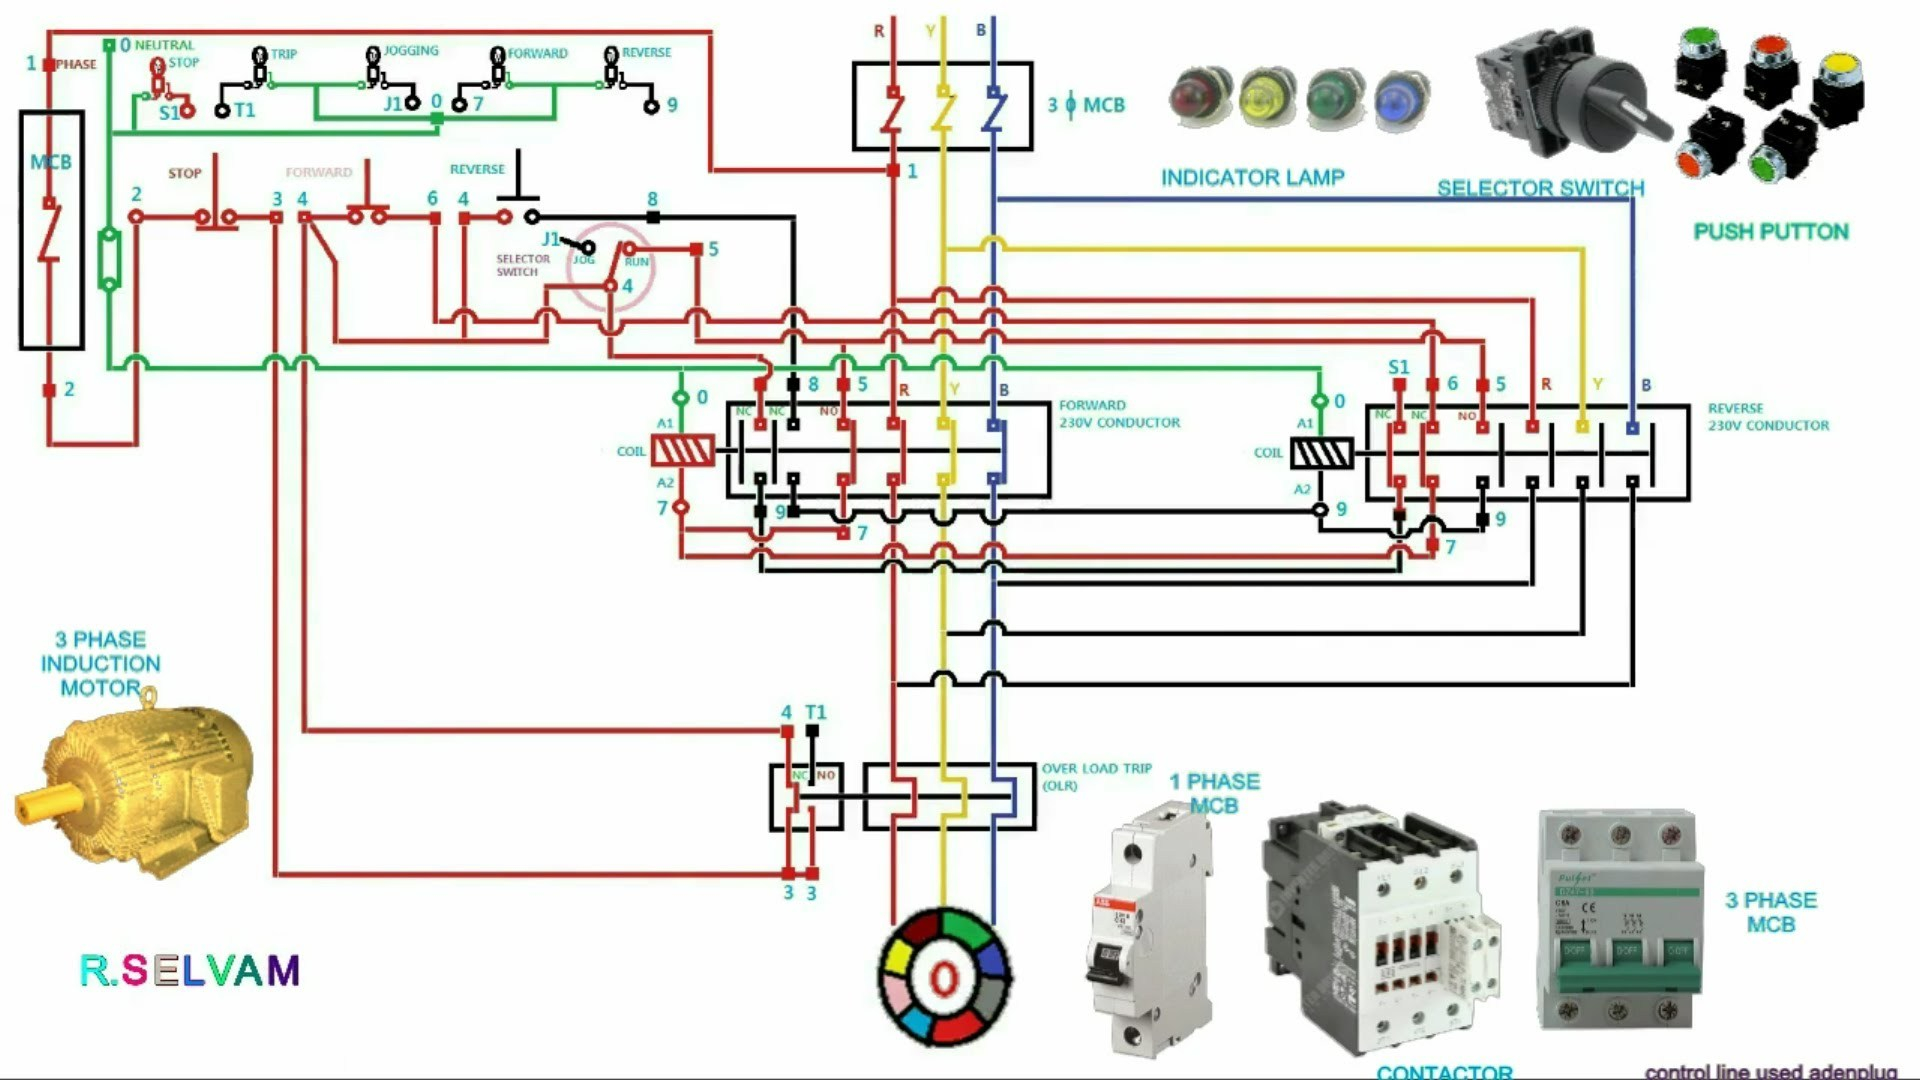 3 Phase Surge Protector Wiring Diagram Auto Electrical Wiring Diagram